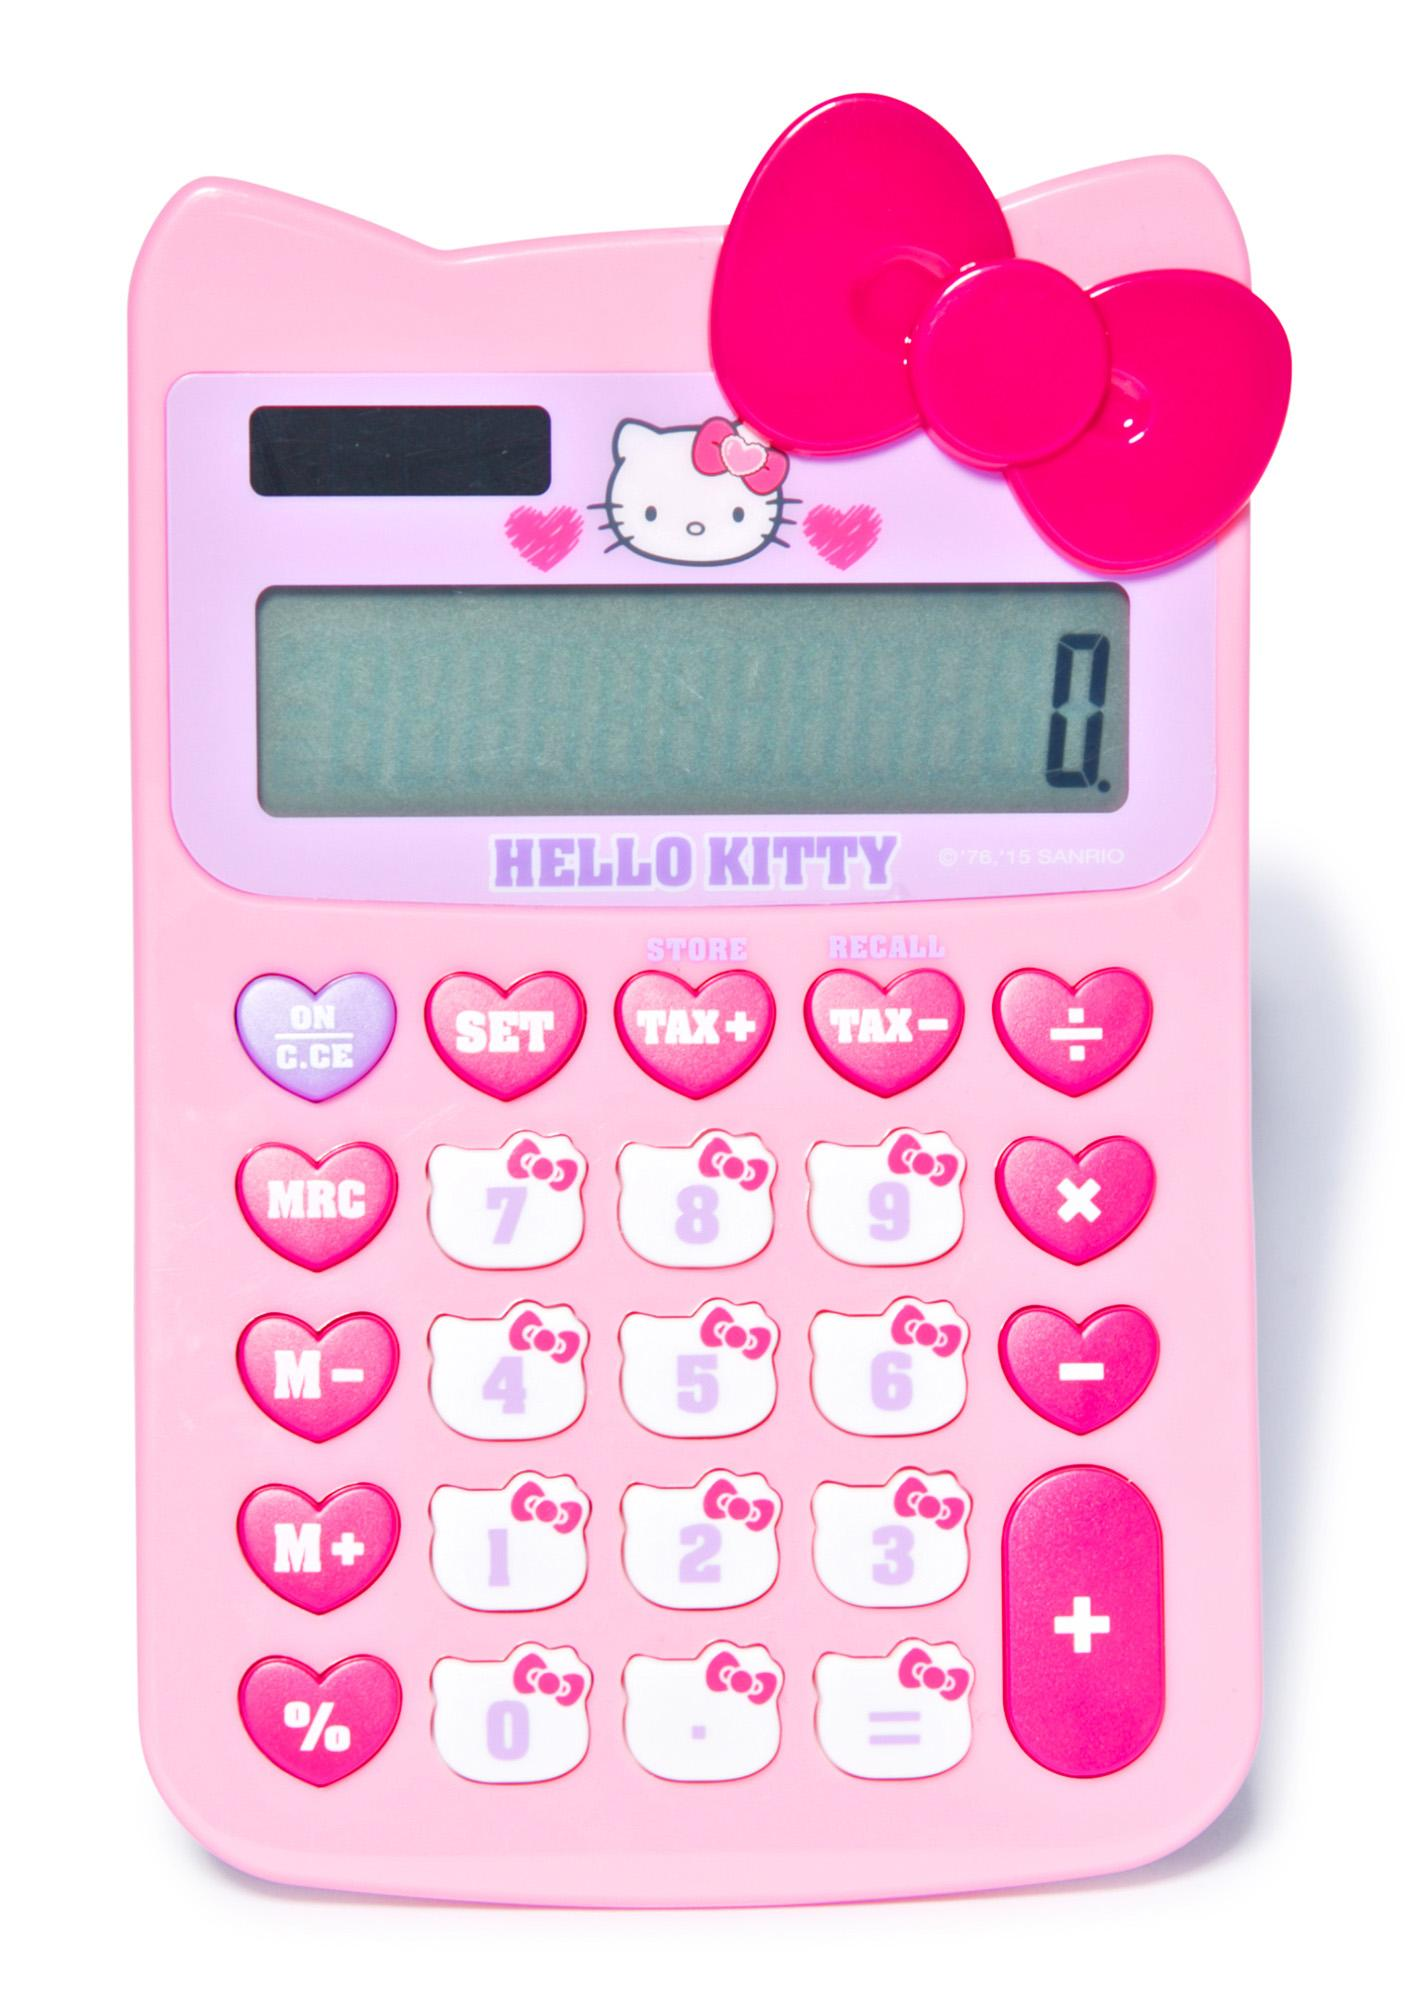 Sanrio Hello Kitty Calculator